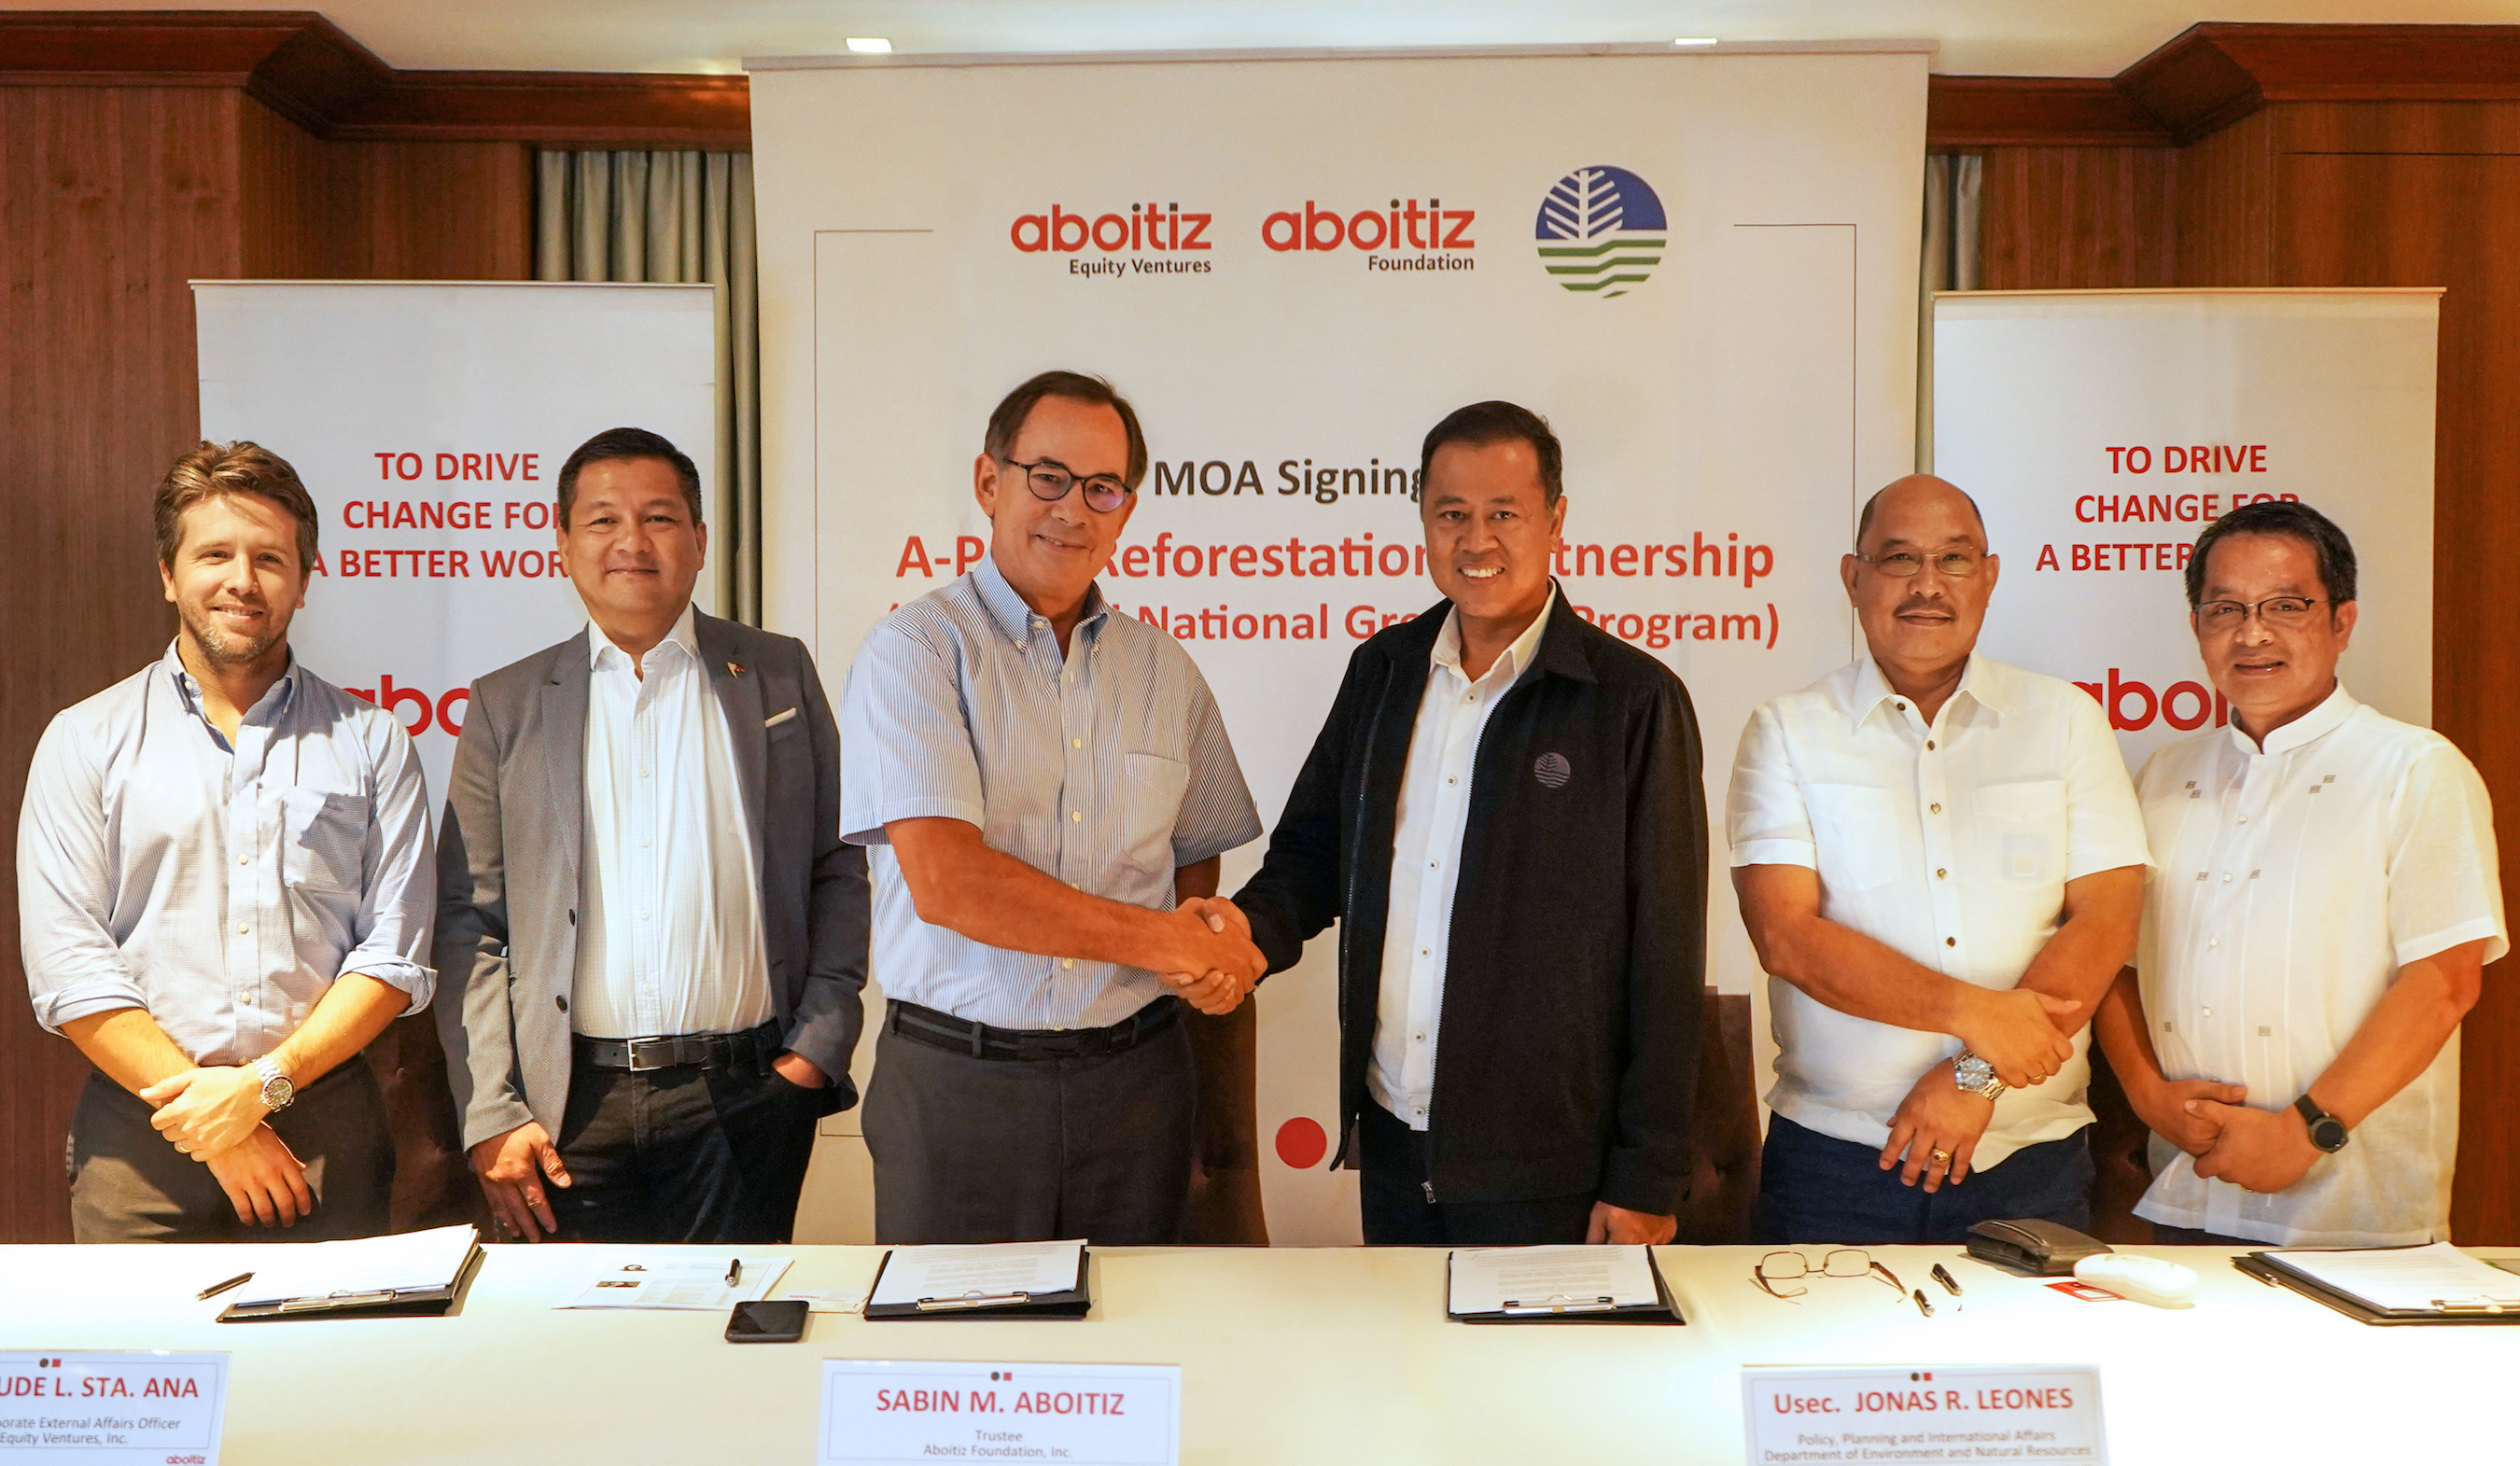 PARTNERSHIP RENEWED. THE DENR renewed its partnership with the Aboitiz Group which will promote ecological balance, including the Aboitiz Group's planting of up to 9 million trees by 2020. The MOA signing was undertaken and witnessed by (from left) Carlos Aboitiz, Hedcor President and Chief Operating Officer (COO); David Jude Sta. Ana, Aboitiz Equity Ventures, Inc. (AEV) Chief Corporate External Affairs Officer; Sabin M. Aboitiz, AEV COO; Jonas R. Leones, DENR Undersecretary for Policy, Planning, and International Affairs; Ricardo Calderon, DENR Assistant Secretary; and Nonito Tamayo, DENR Director, Forest Management Bureau.